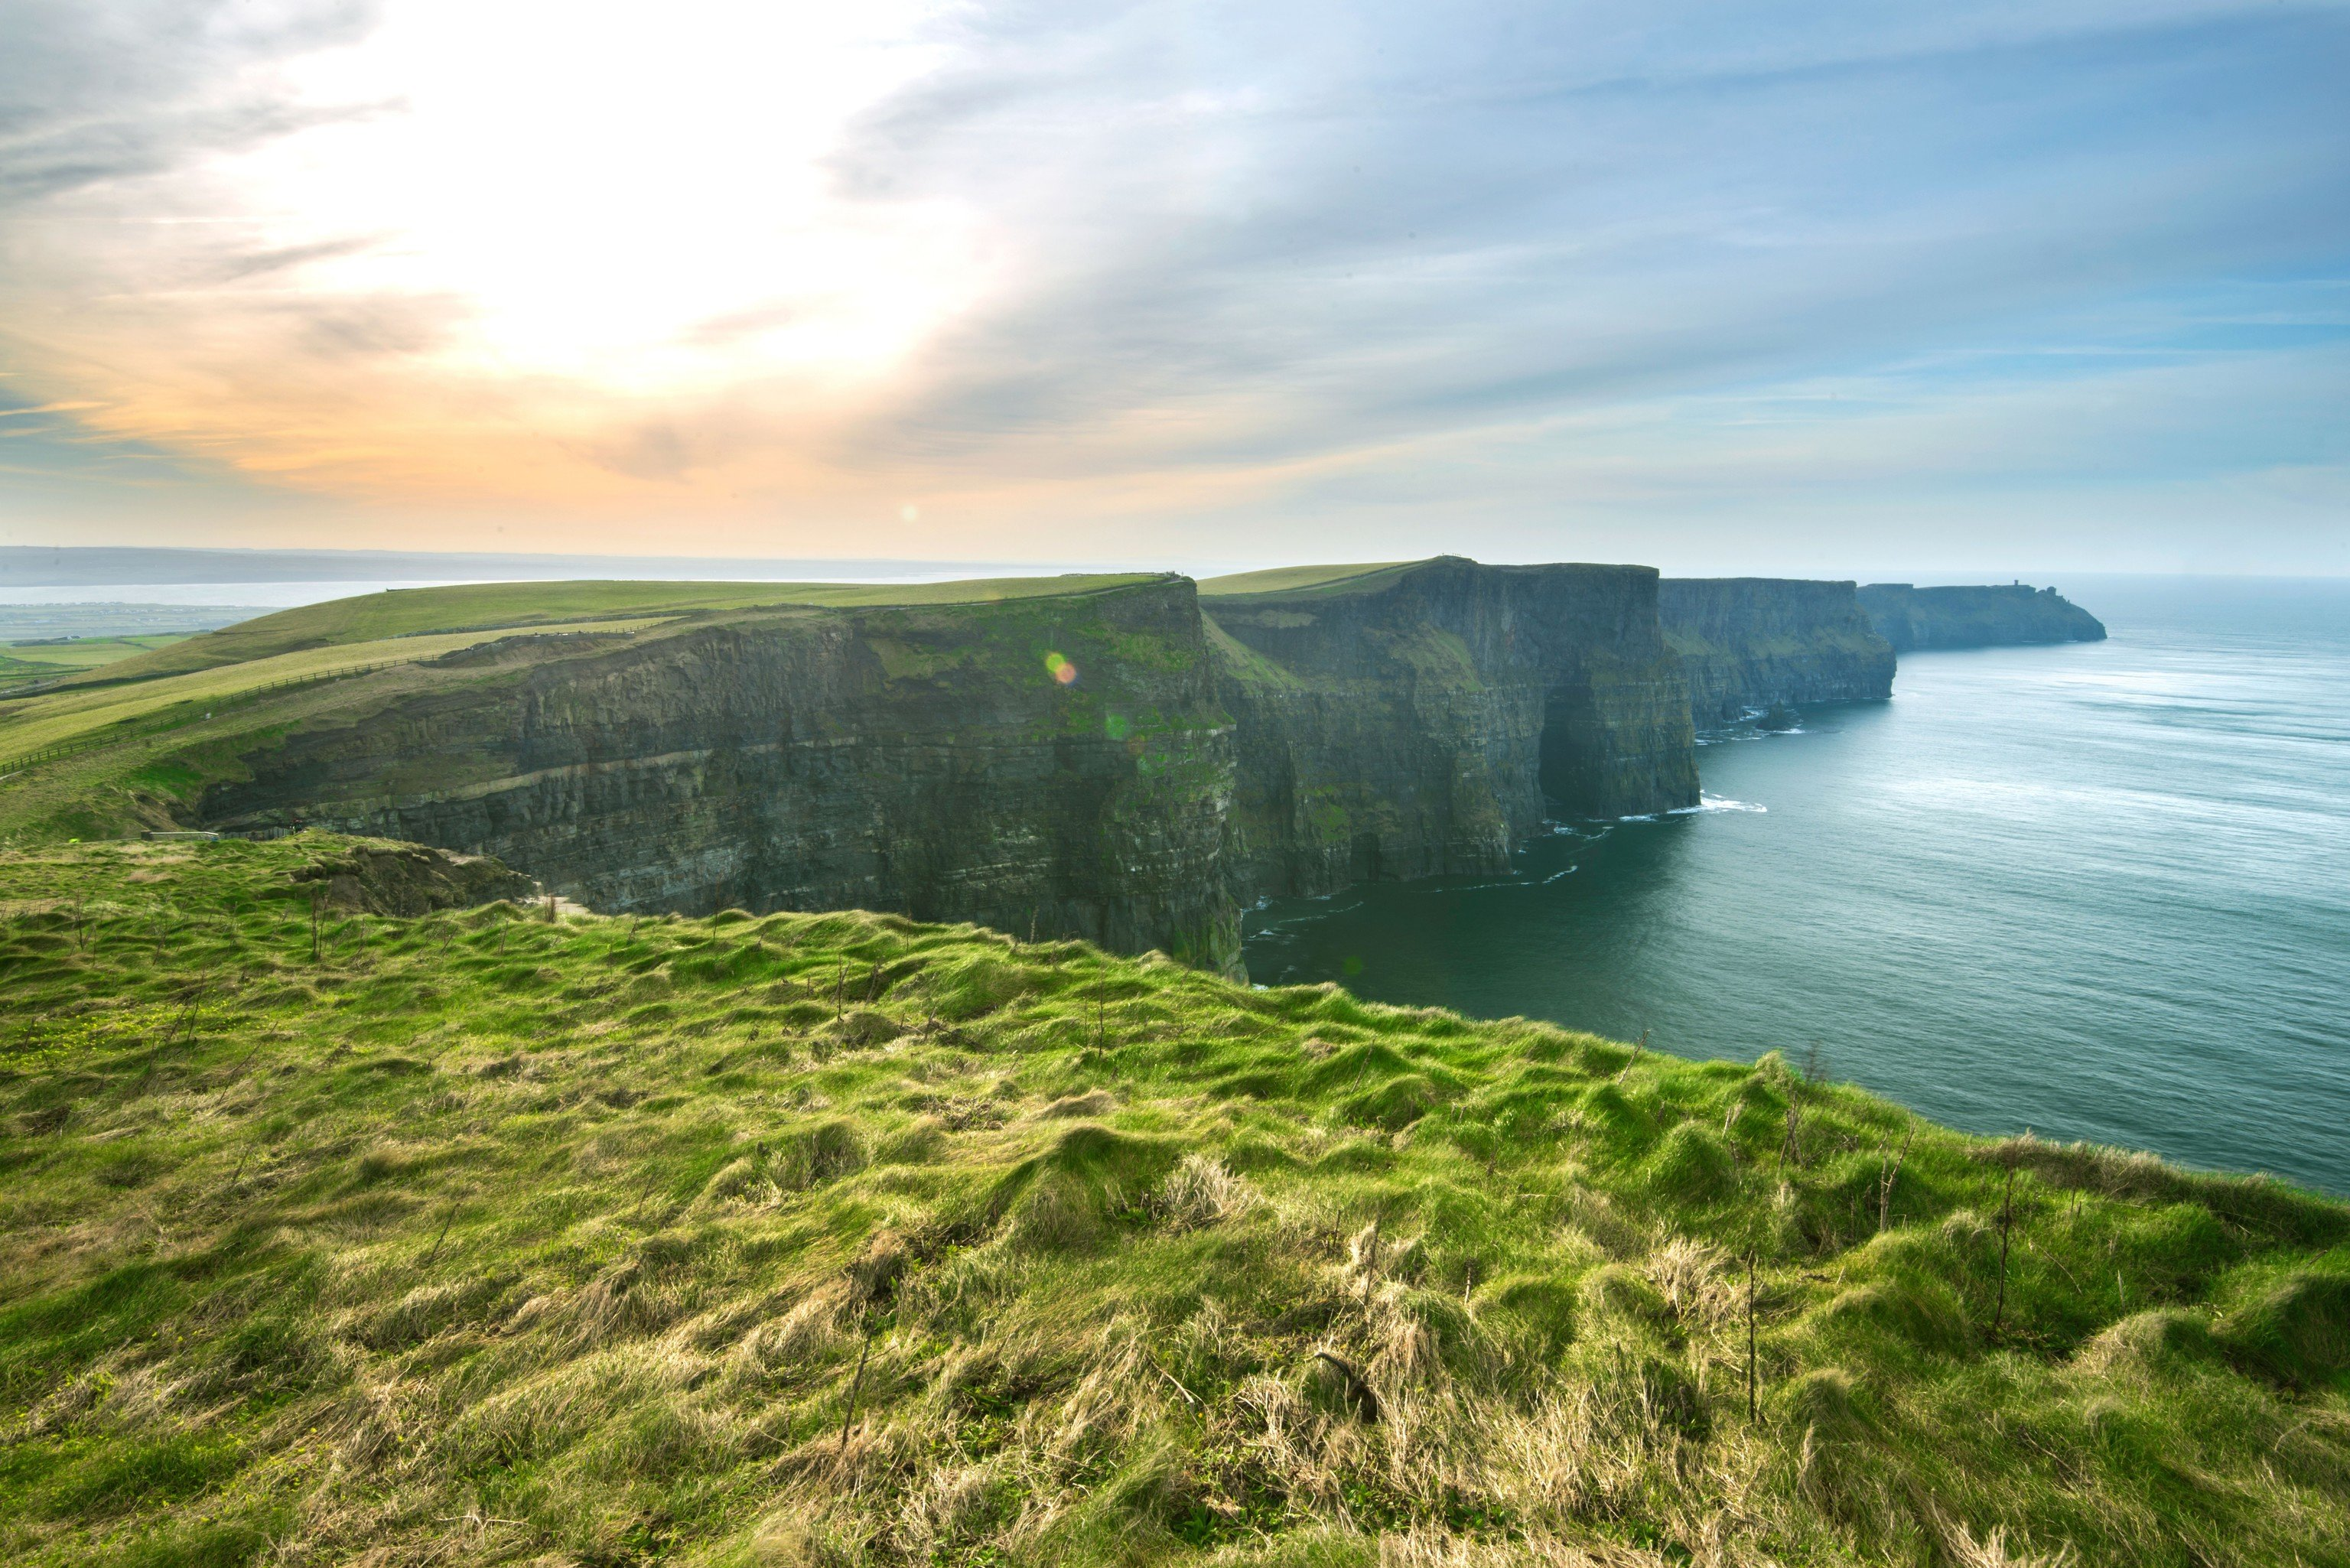 Jetsetter Guides grass sky outdoor water Nature Coast cliff landform geographical feature atmospheric phenomenon Sea body of water horizon shore hill green Ocean cloud grassy terrain loch morning reservoir bay landscape cape fjord hillside cove Lake overlooking lush rock highland